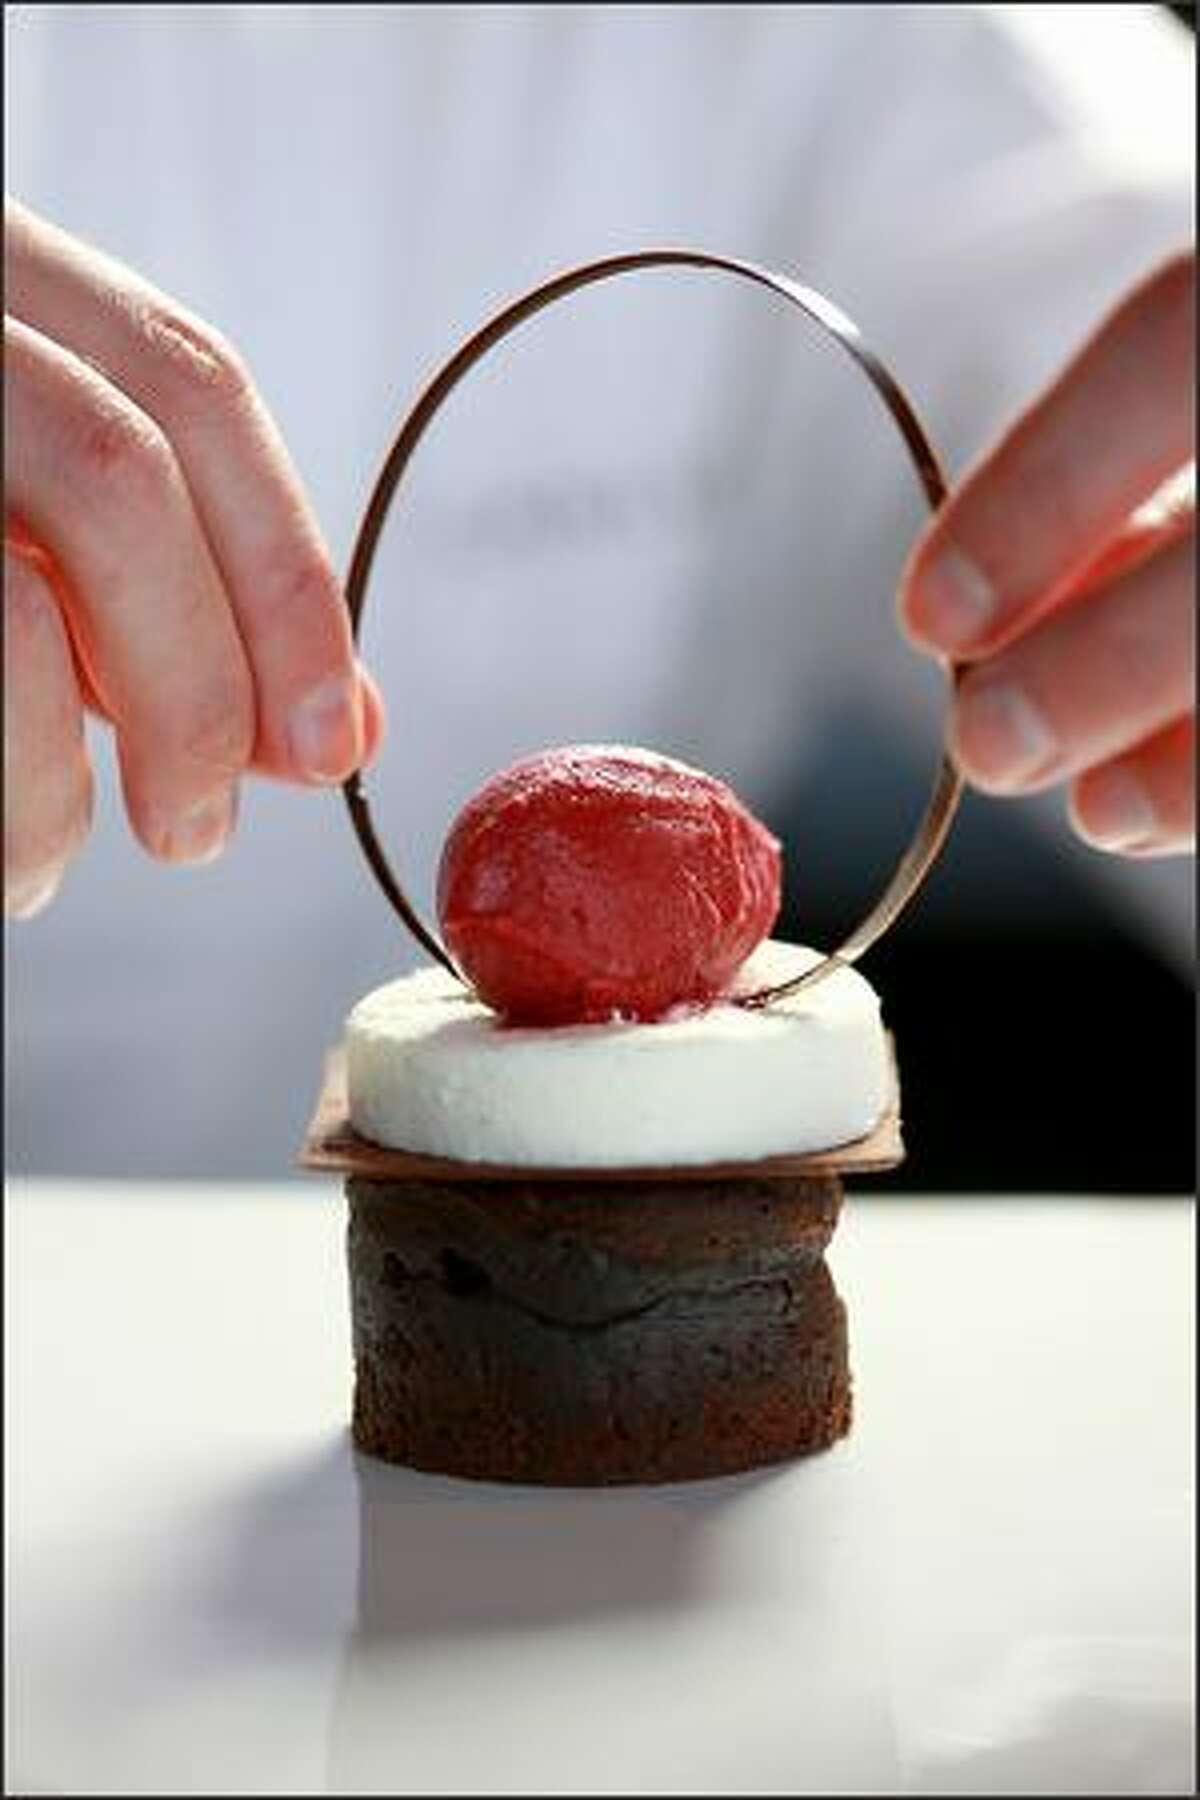 Molten Chocolate Black Forest Cake with Sour Cherry Sorbet, Kirsch Mousse and Thin Chocolate Tuile Cookie.